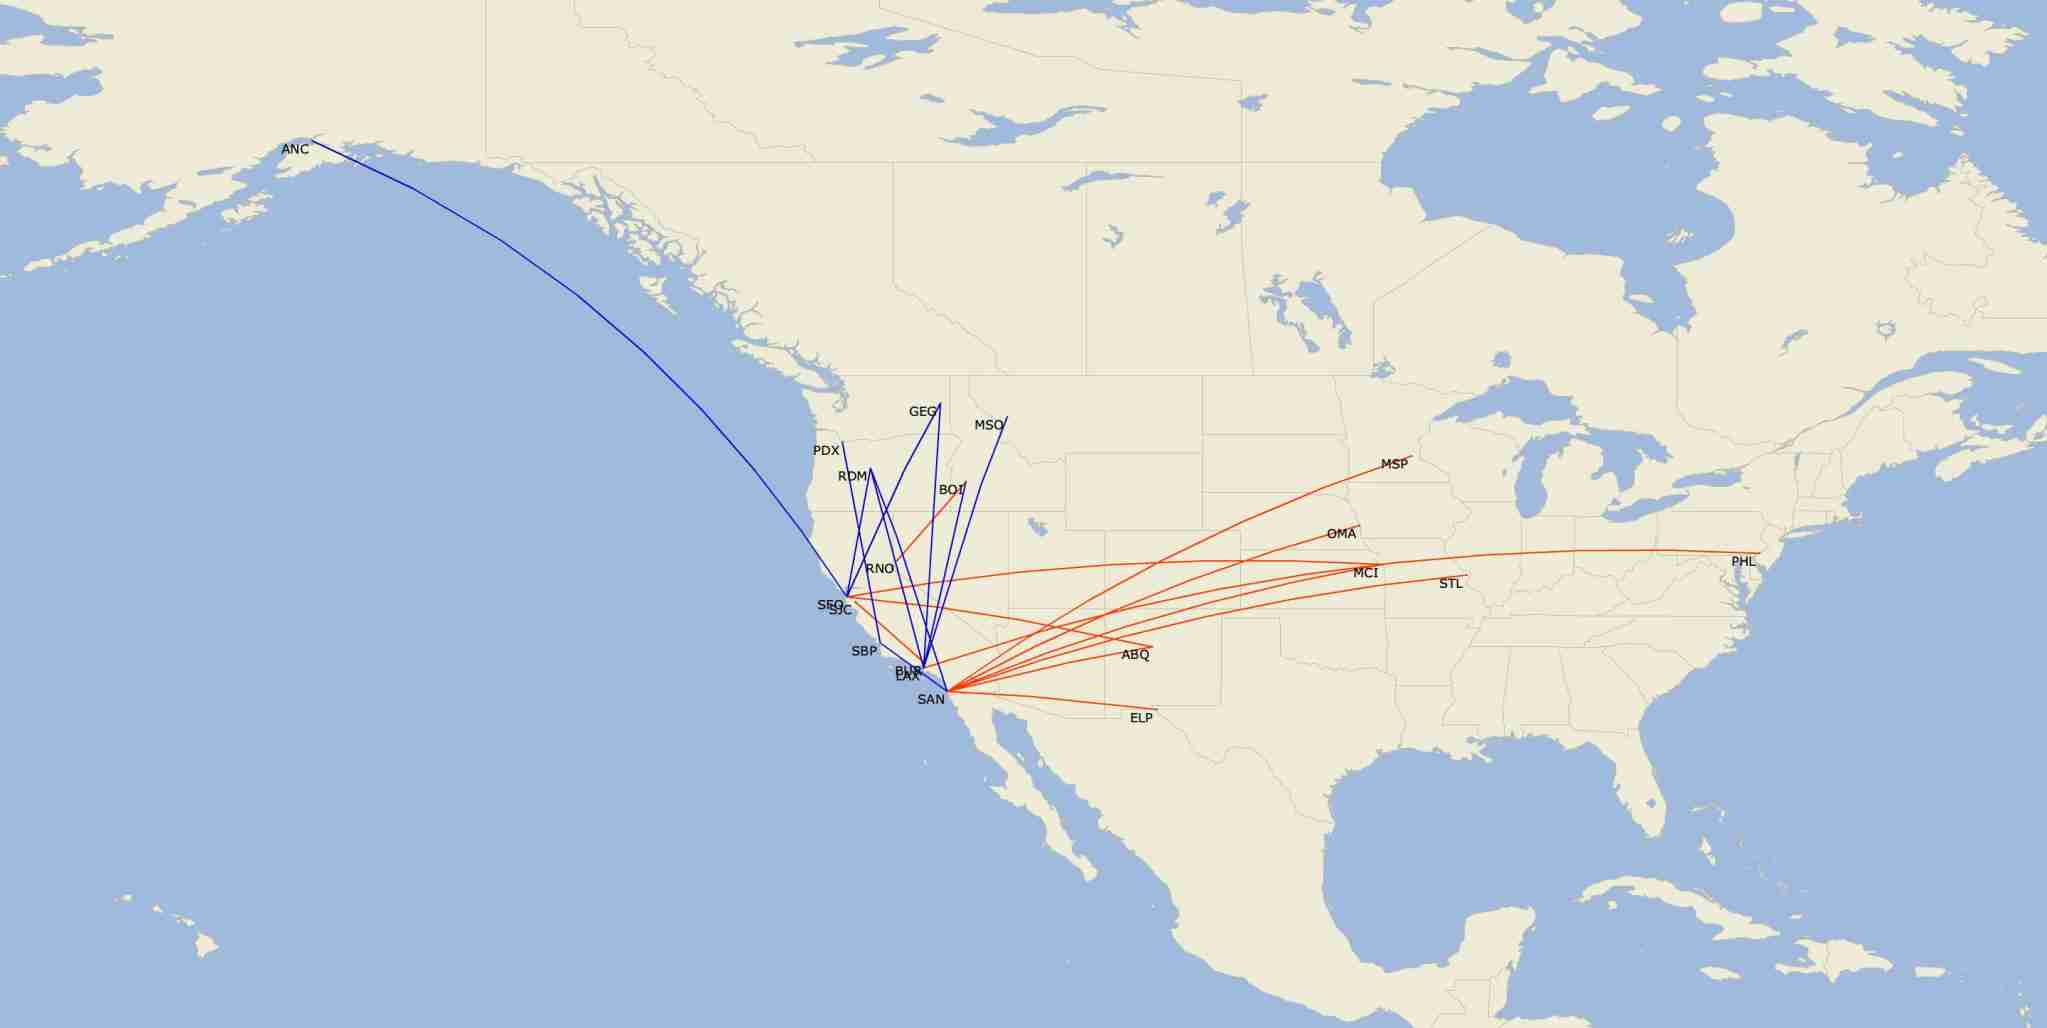 Alaska Airlines will add 10 new routes (blue) and drop 11 routes (red) in a shift back to the Western US. (Map by Diio by Cirium)